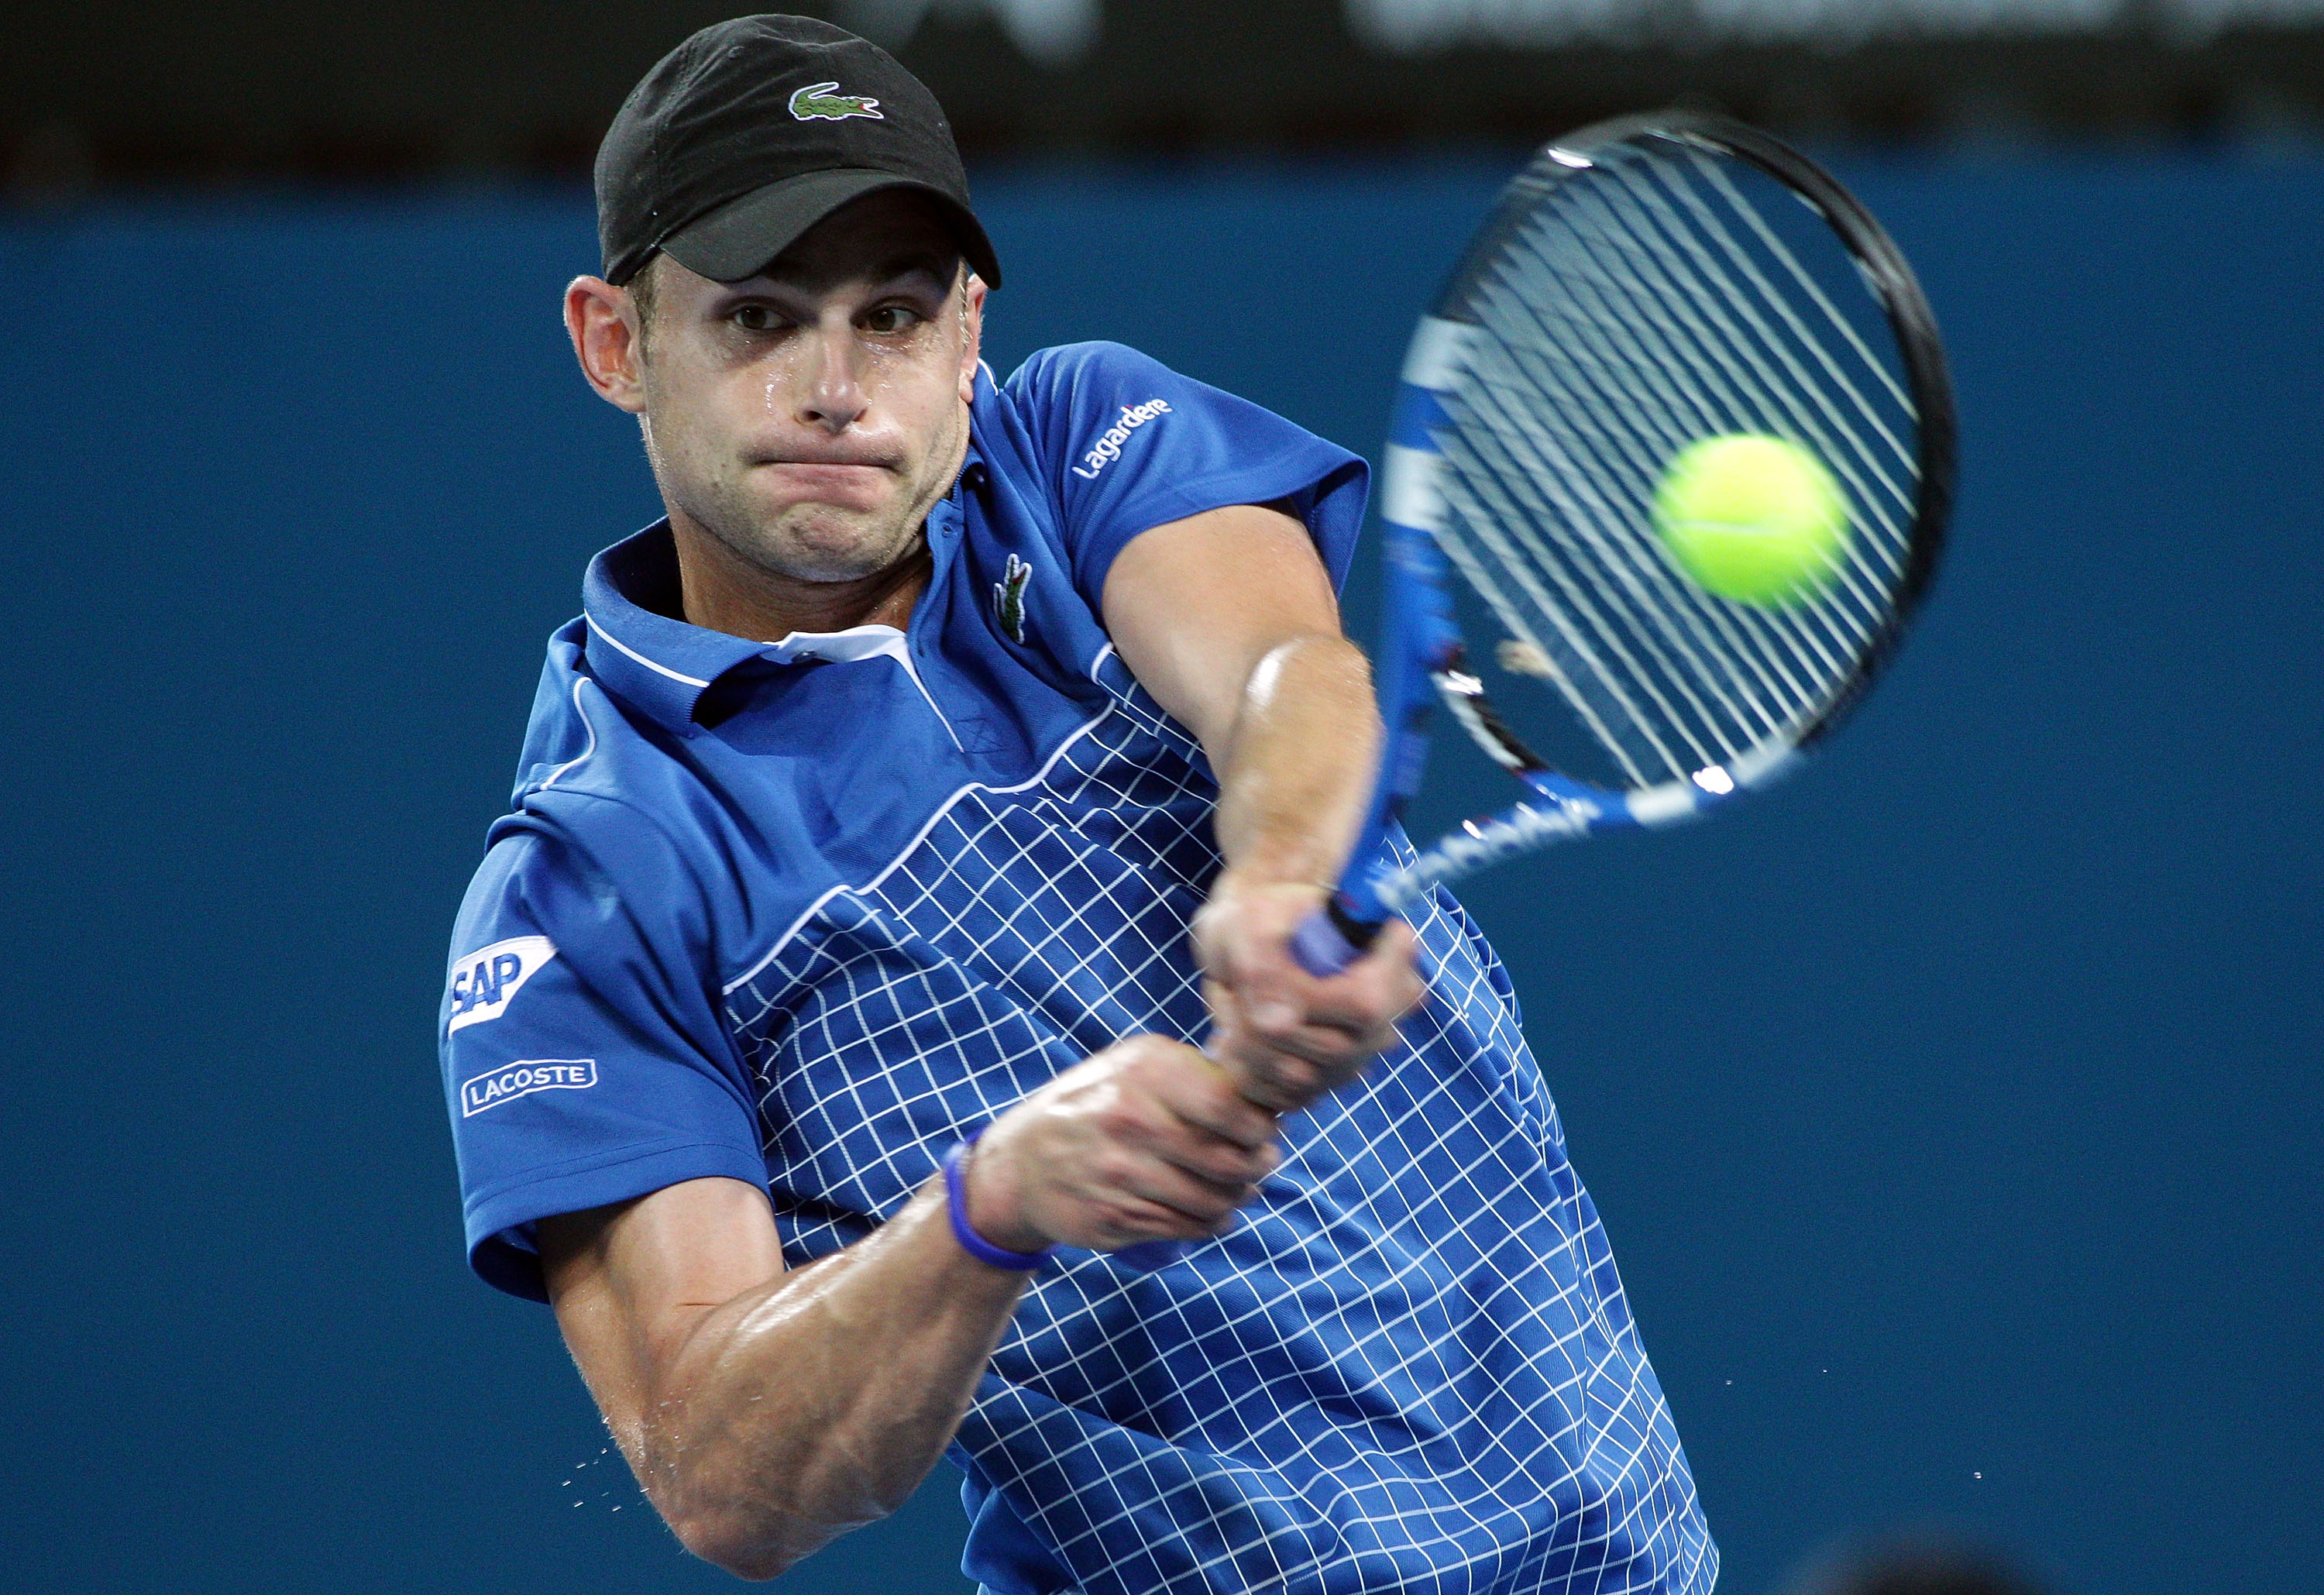 BRISBANE, AUSTRALIA - JANUARY 03:  Andy Roddick of the USA plays a backhand during his first round match against Marinko Matosevic of Australia during day two of the Brisbane International at Queensland Tennis Centre on January 3, 2011 in Brisbane, Austra